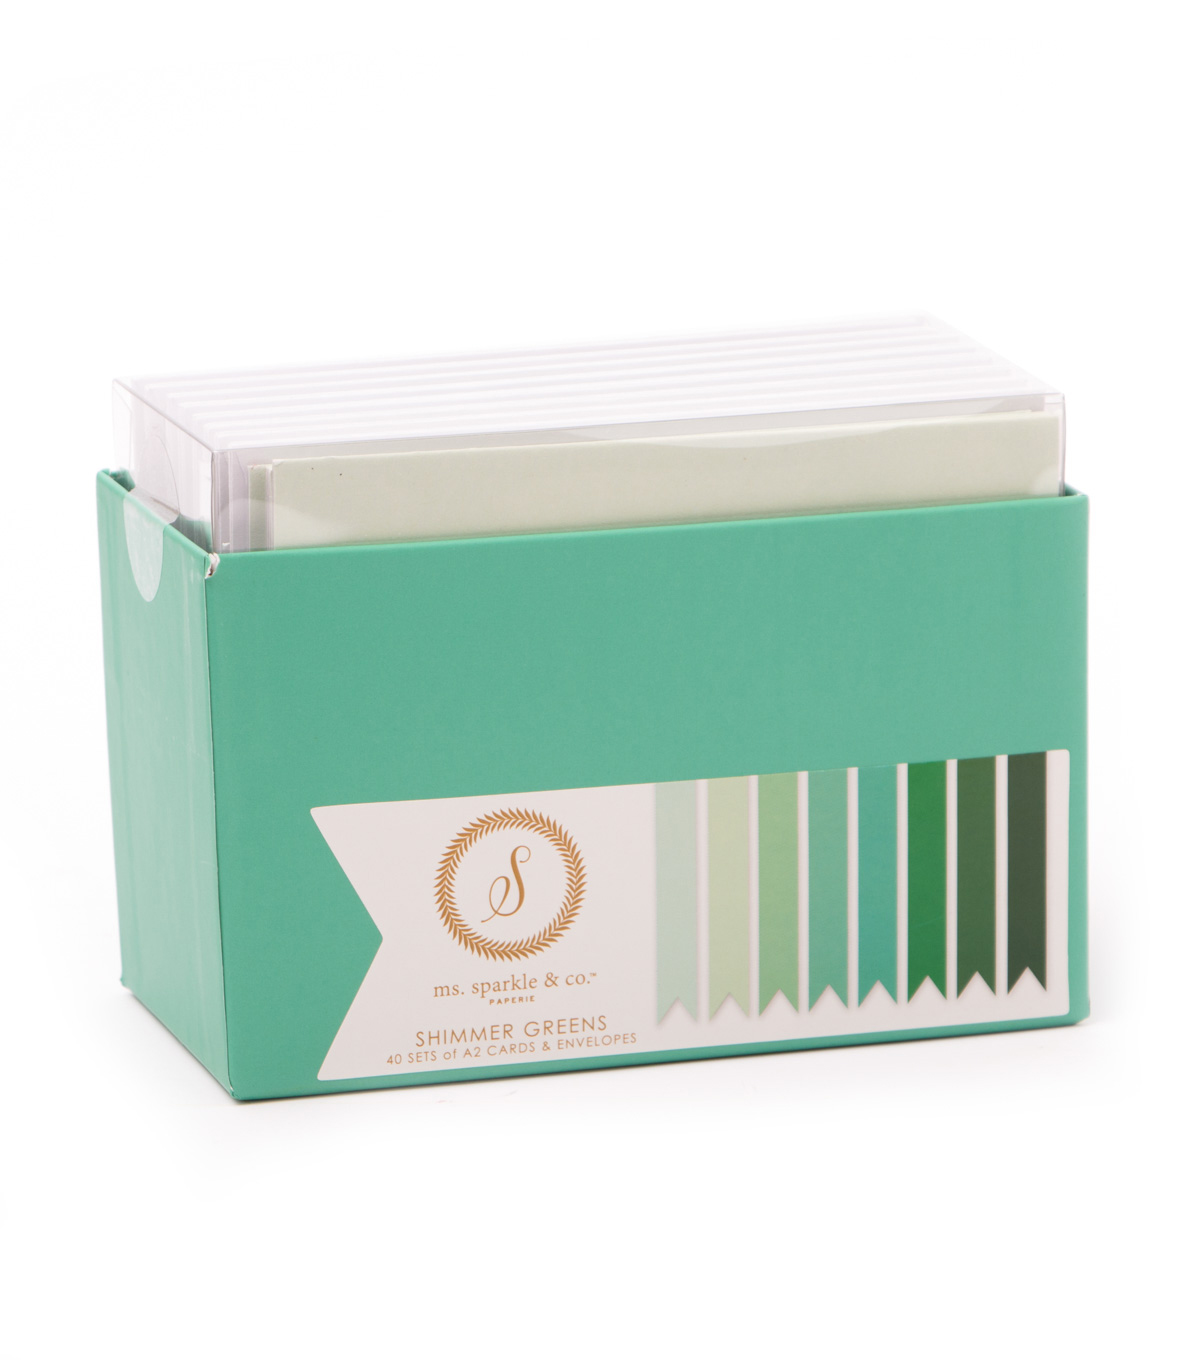 Ms. Sparkle & Co. A2 Shimmer Cards & Envelopes-Greens